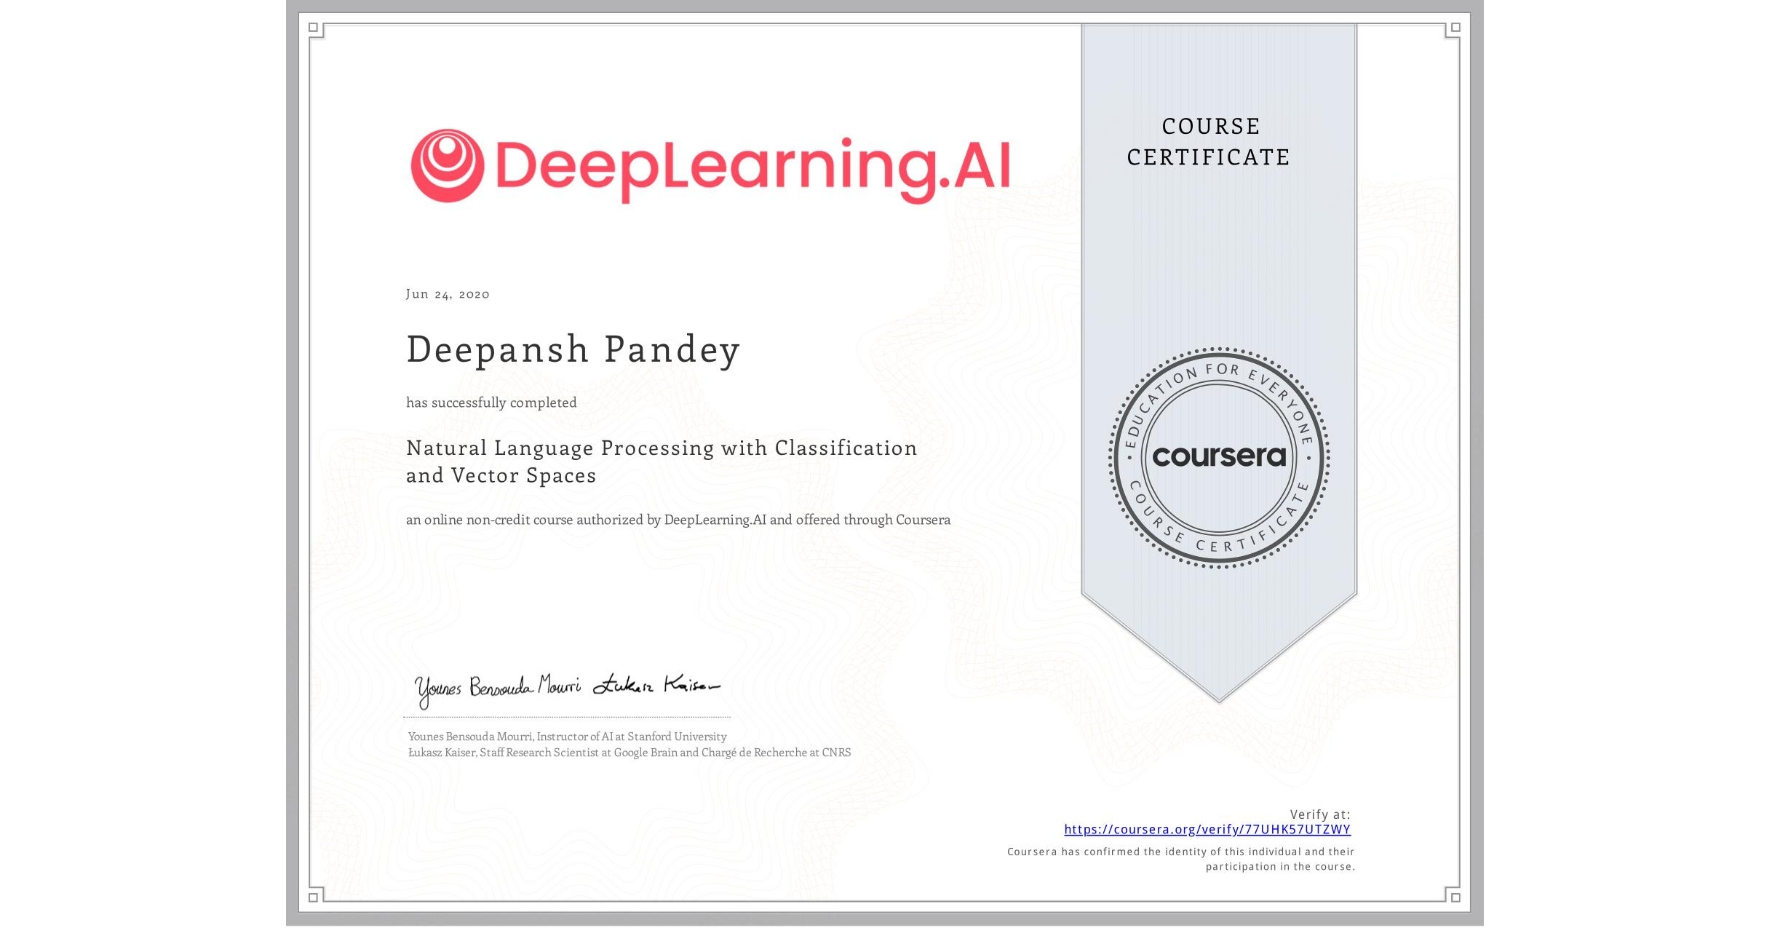 View certificate for Deepansh Pandey, Natural Language Processing with Classification and Vector Spaces, an online non-credit course authorized by DeepLearning.AI and offered through Coursera